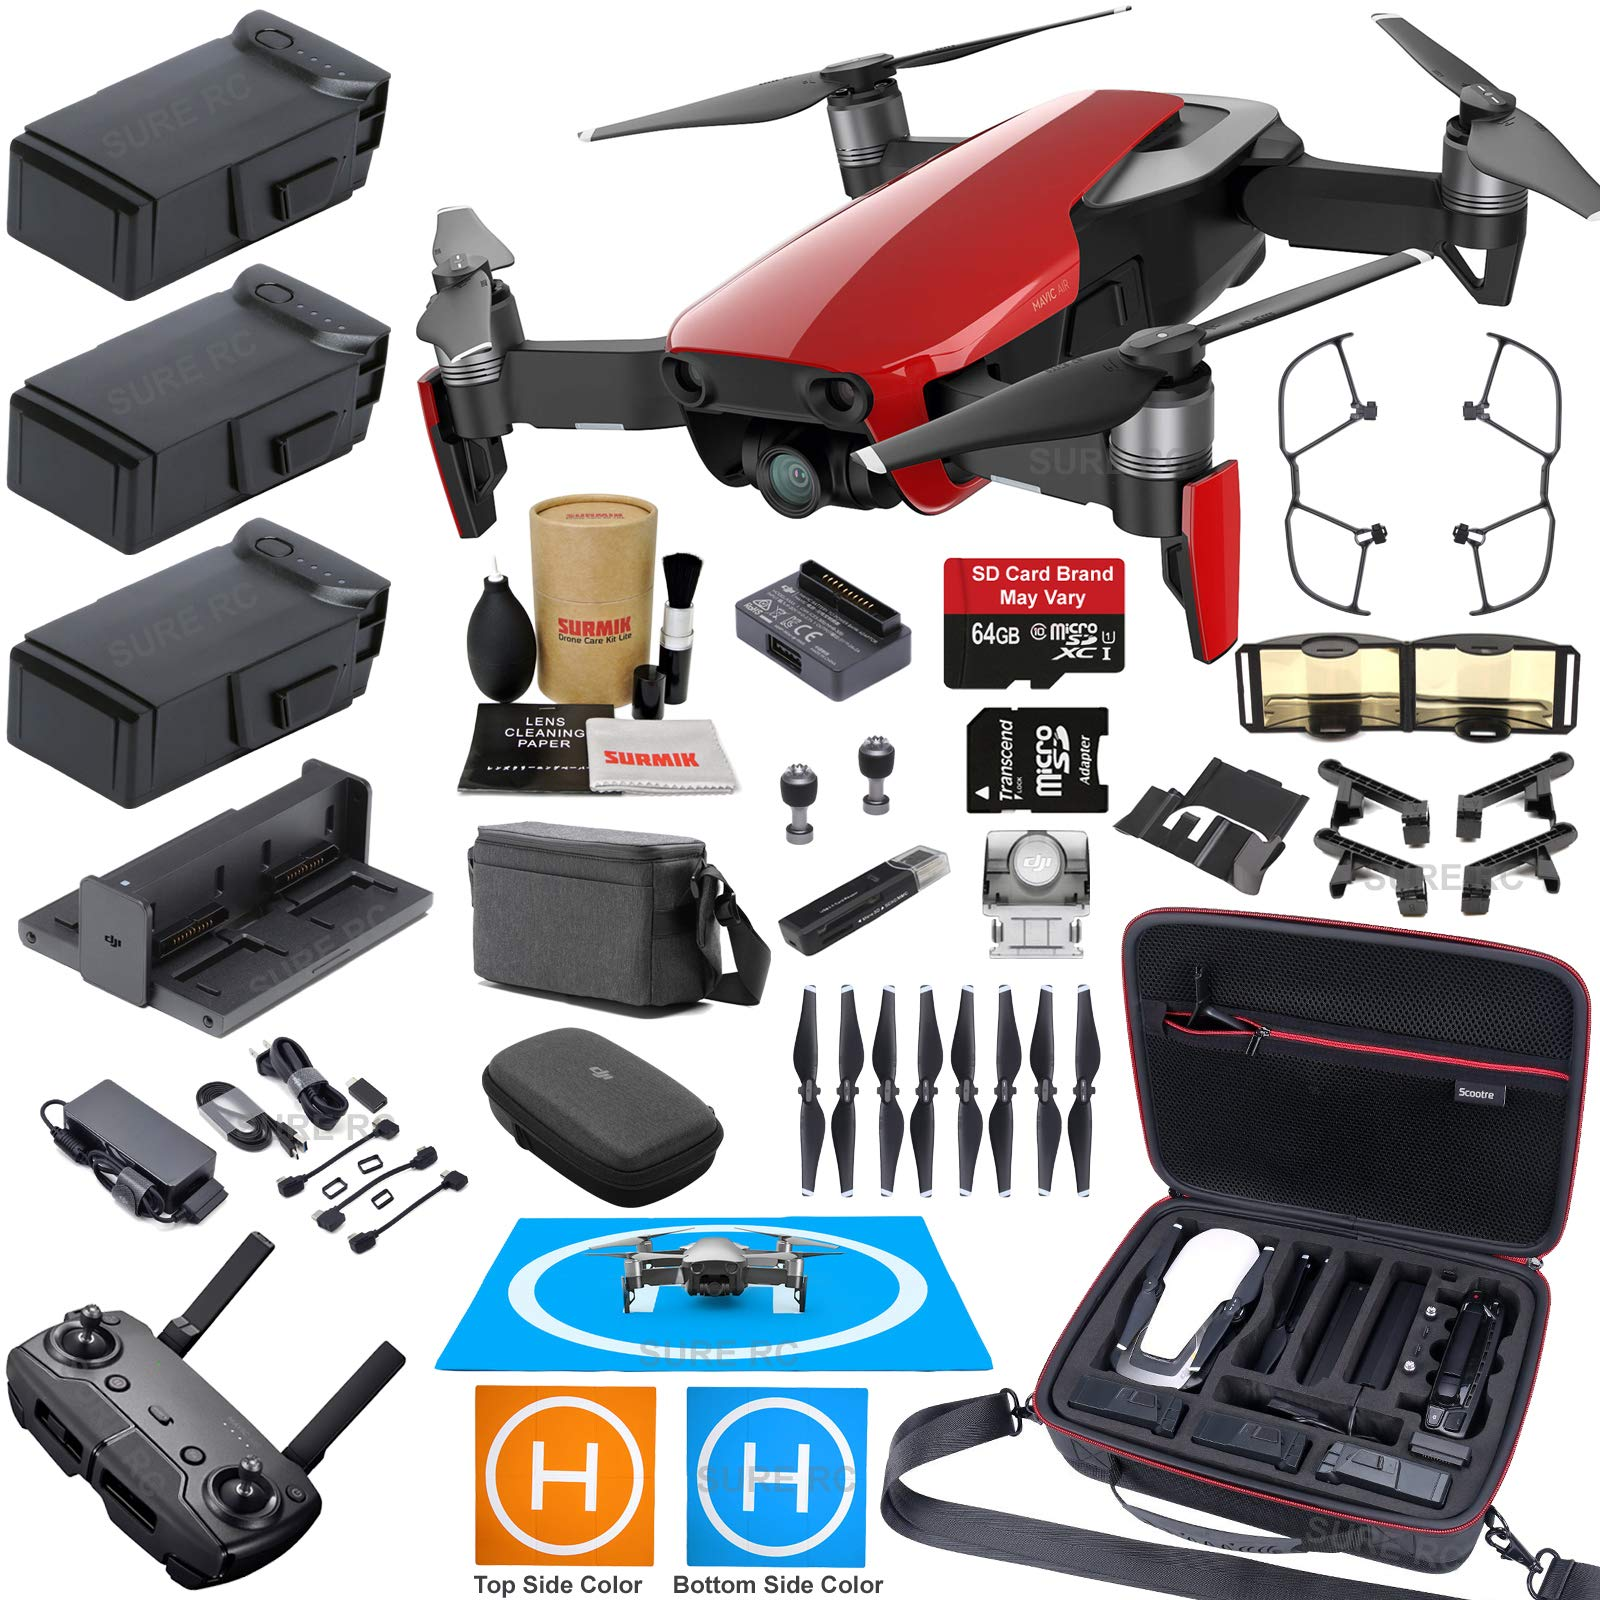 DJI Mavic Air Fly More Combo (Flame Red) Elite Bundle with 3 Batteries, 4K Camera Gimbal, Professional Carrying Case and Must Have Accessories by DJI